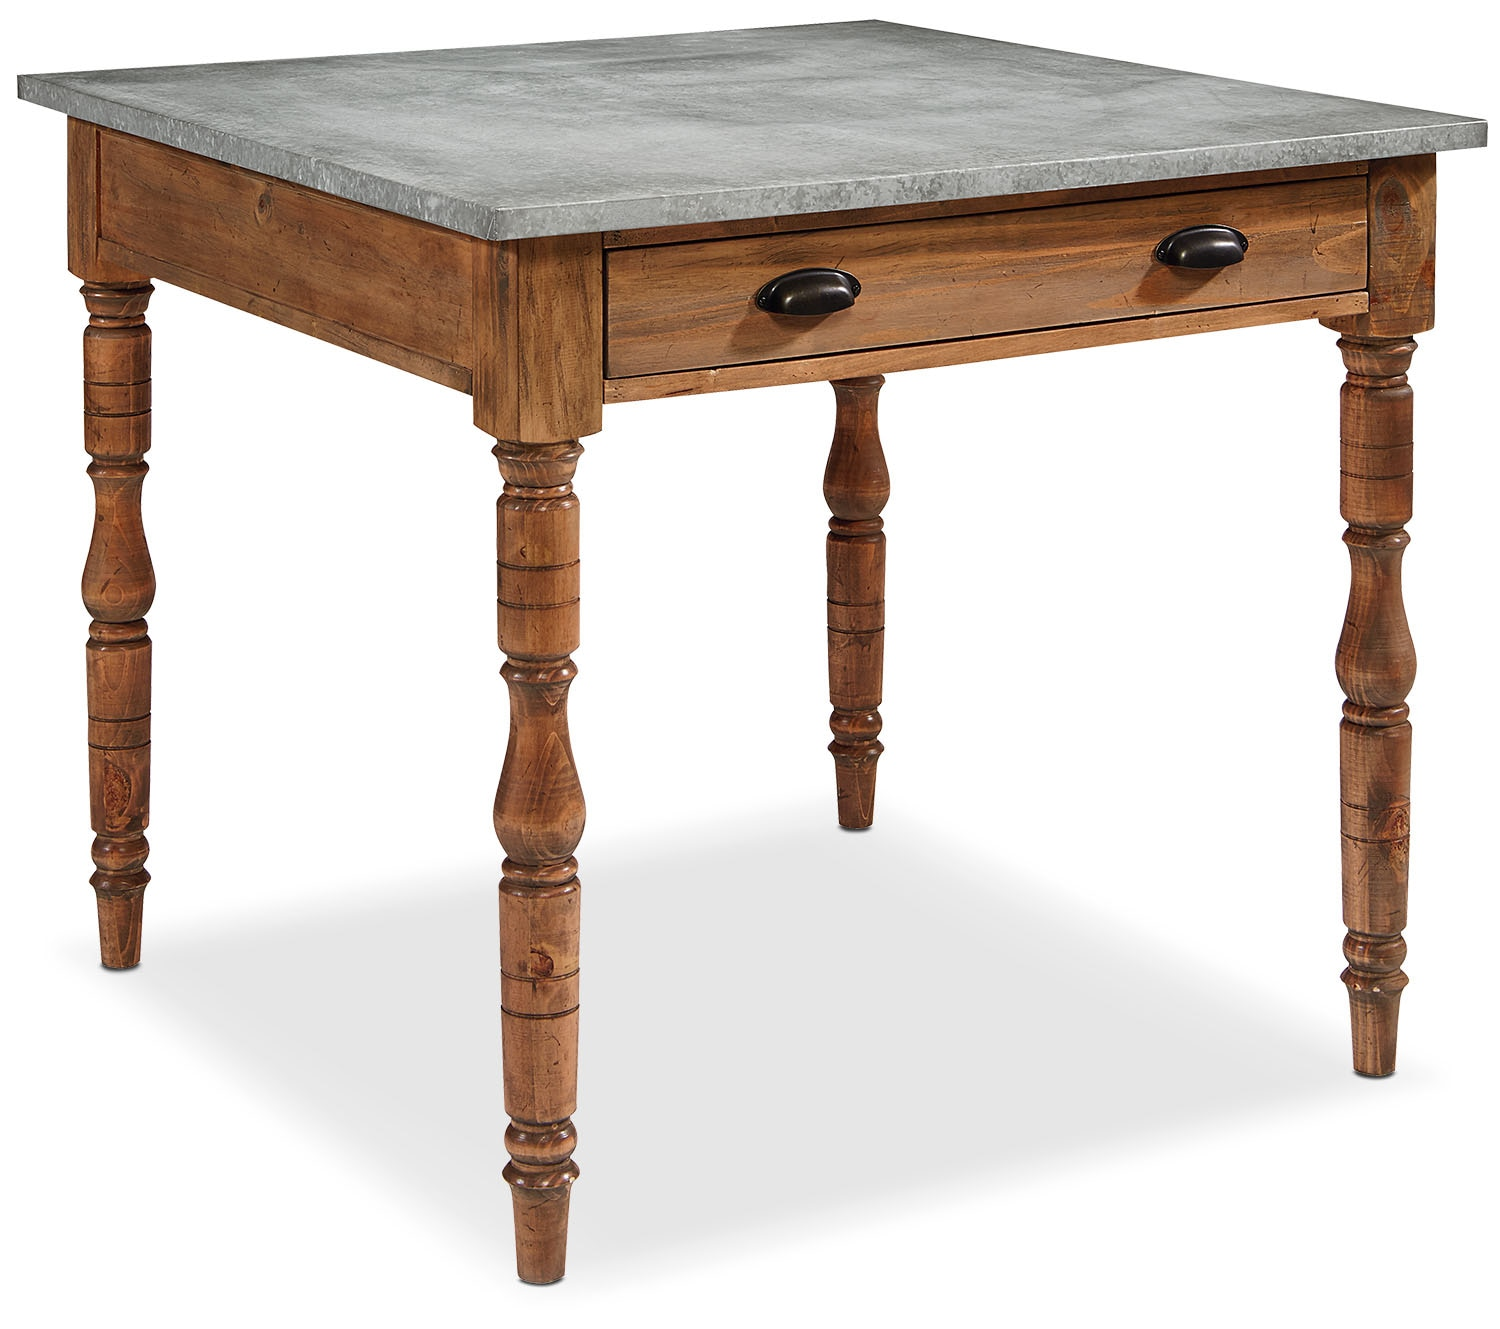 Dining Room Furniture - Taper Turned Gathering Table with Zinc Top - Bench